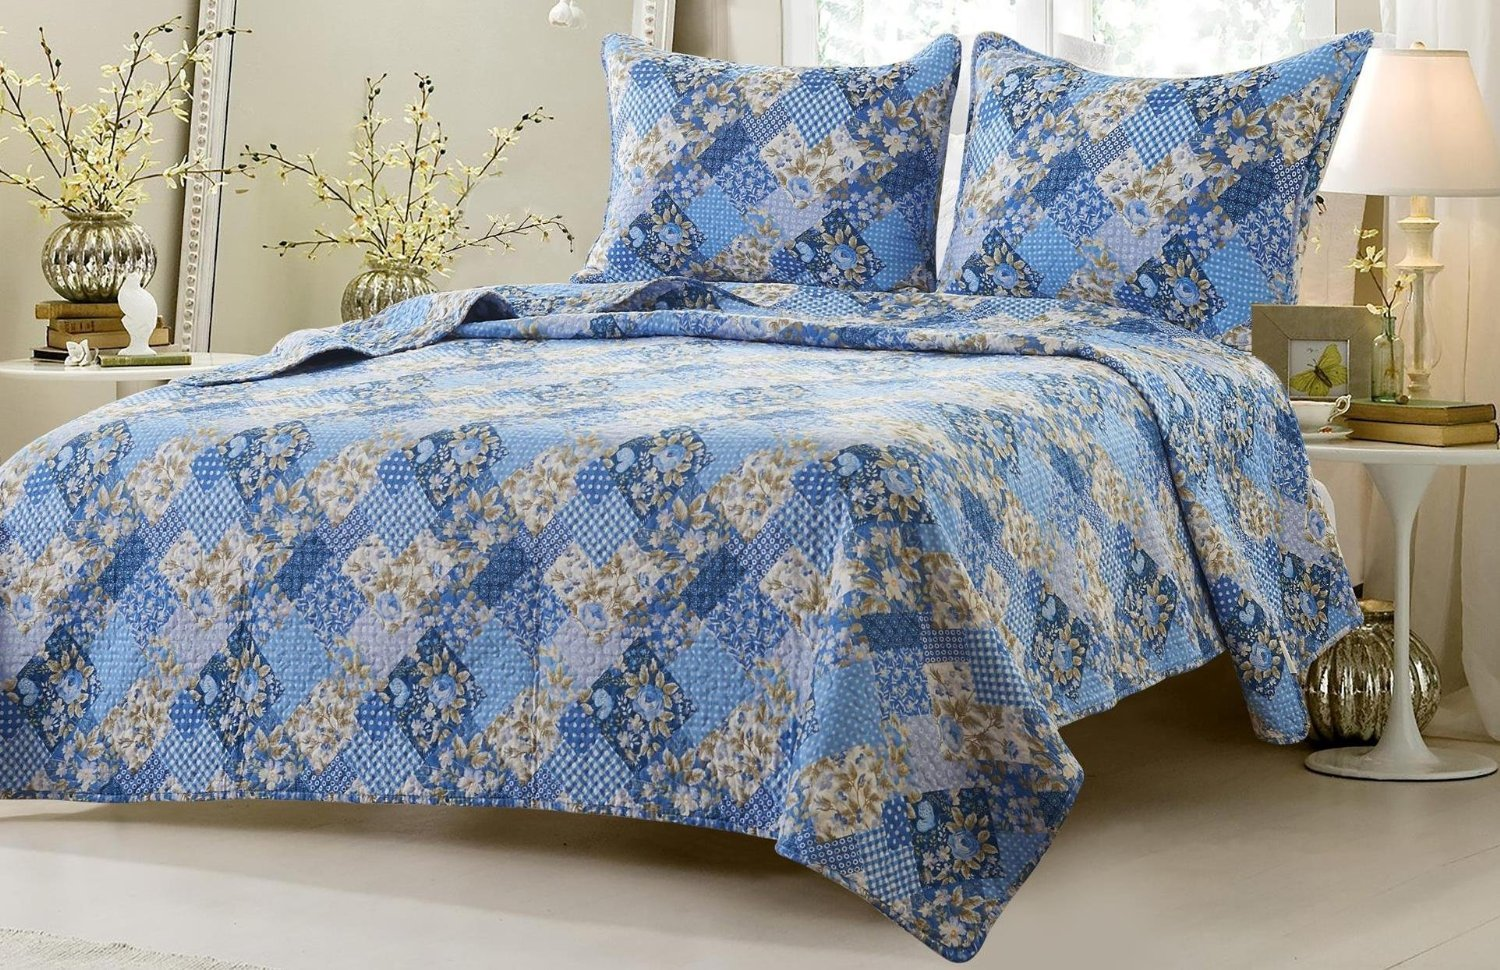 Web Linens Inc 3pc Floral Blue Patchwork Quilt Set - Style # 1048 - King/California King - Cherry Hill Collection